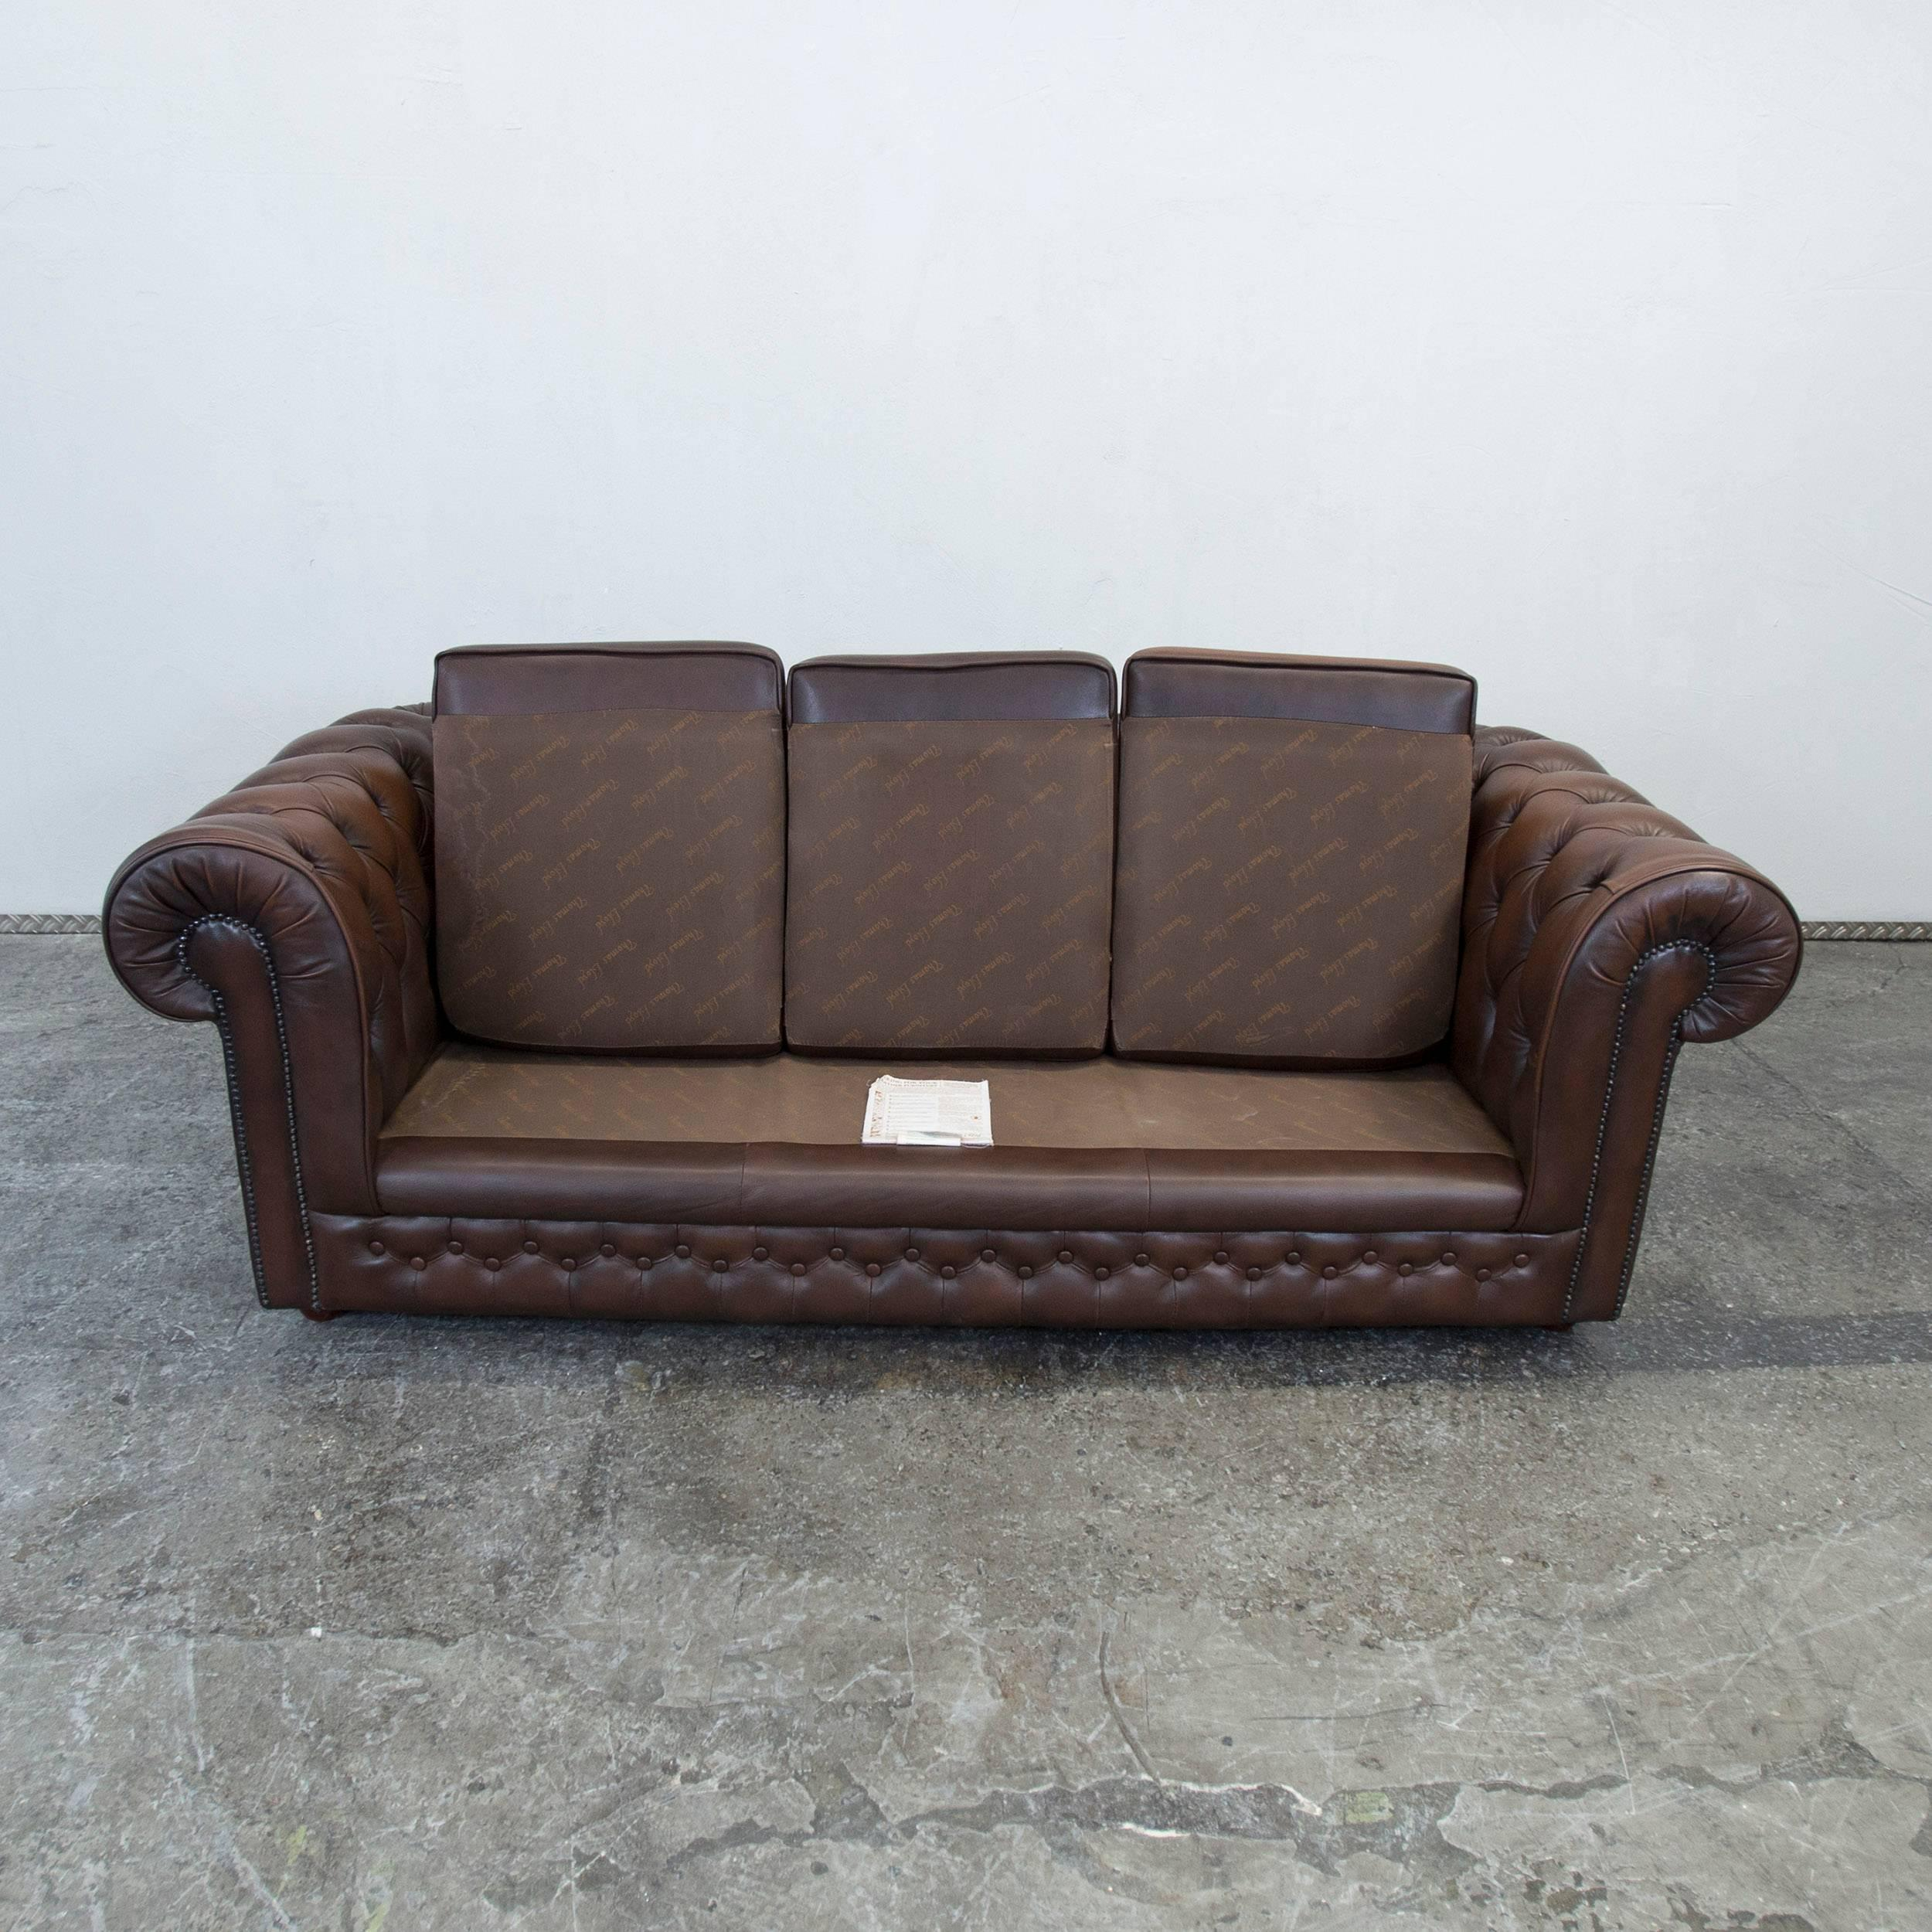 Wunderschön Couch Leder Braun Ideen Von Cool Thomas Lloyd Leather Sofa Brown Threeseat